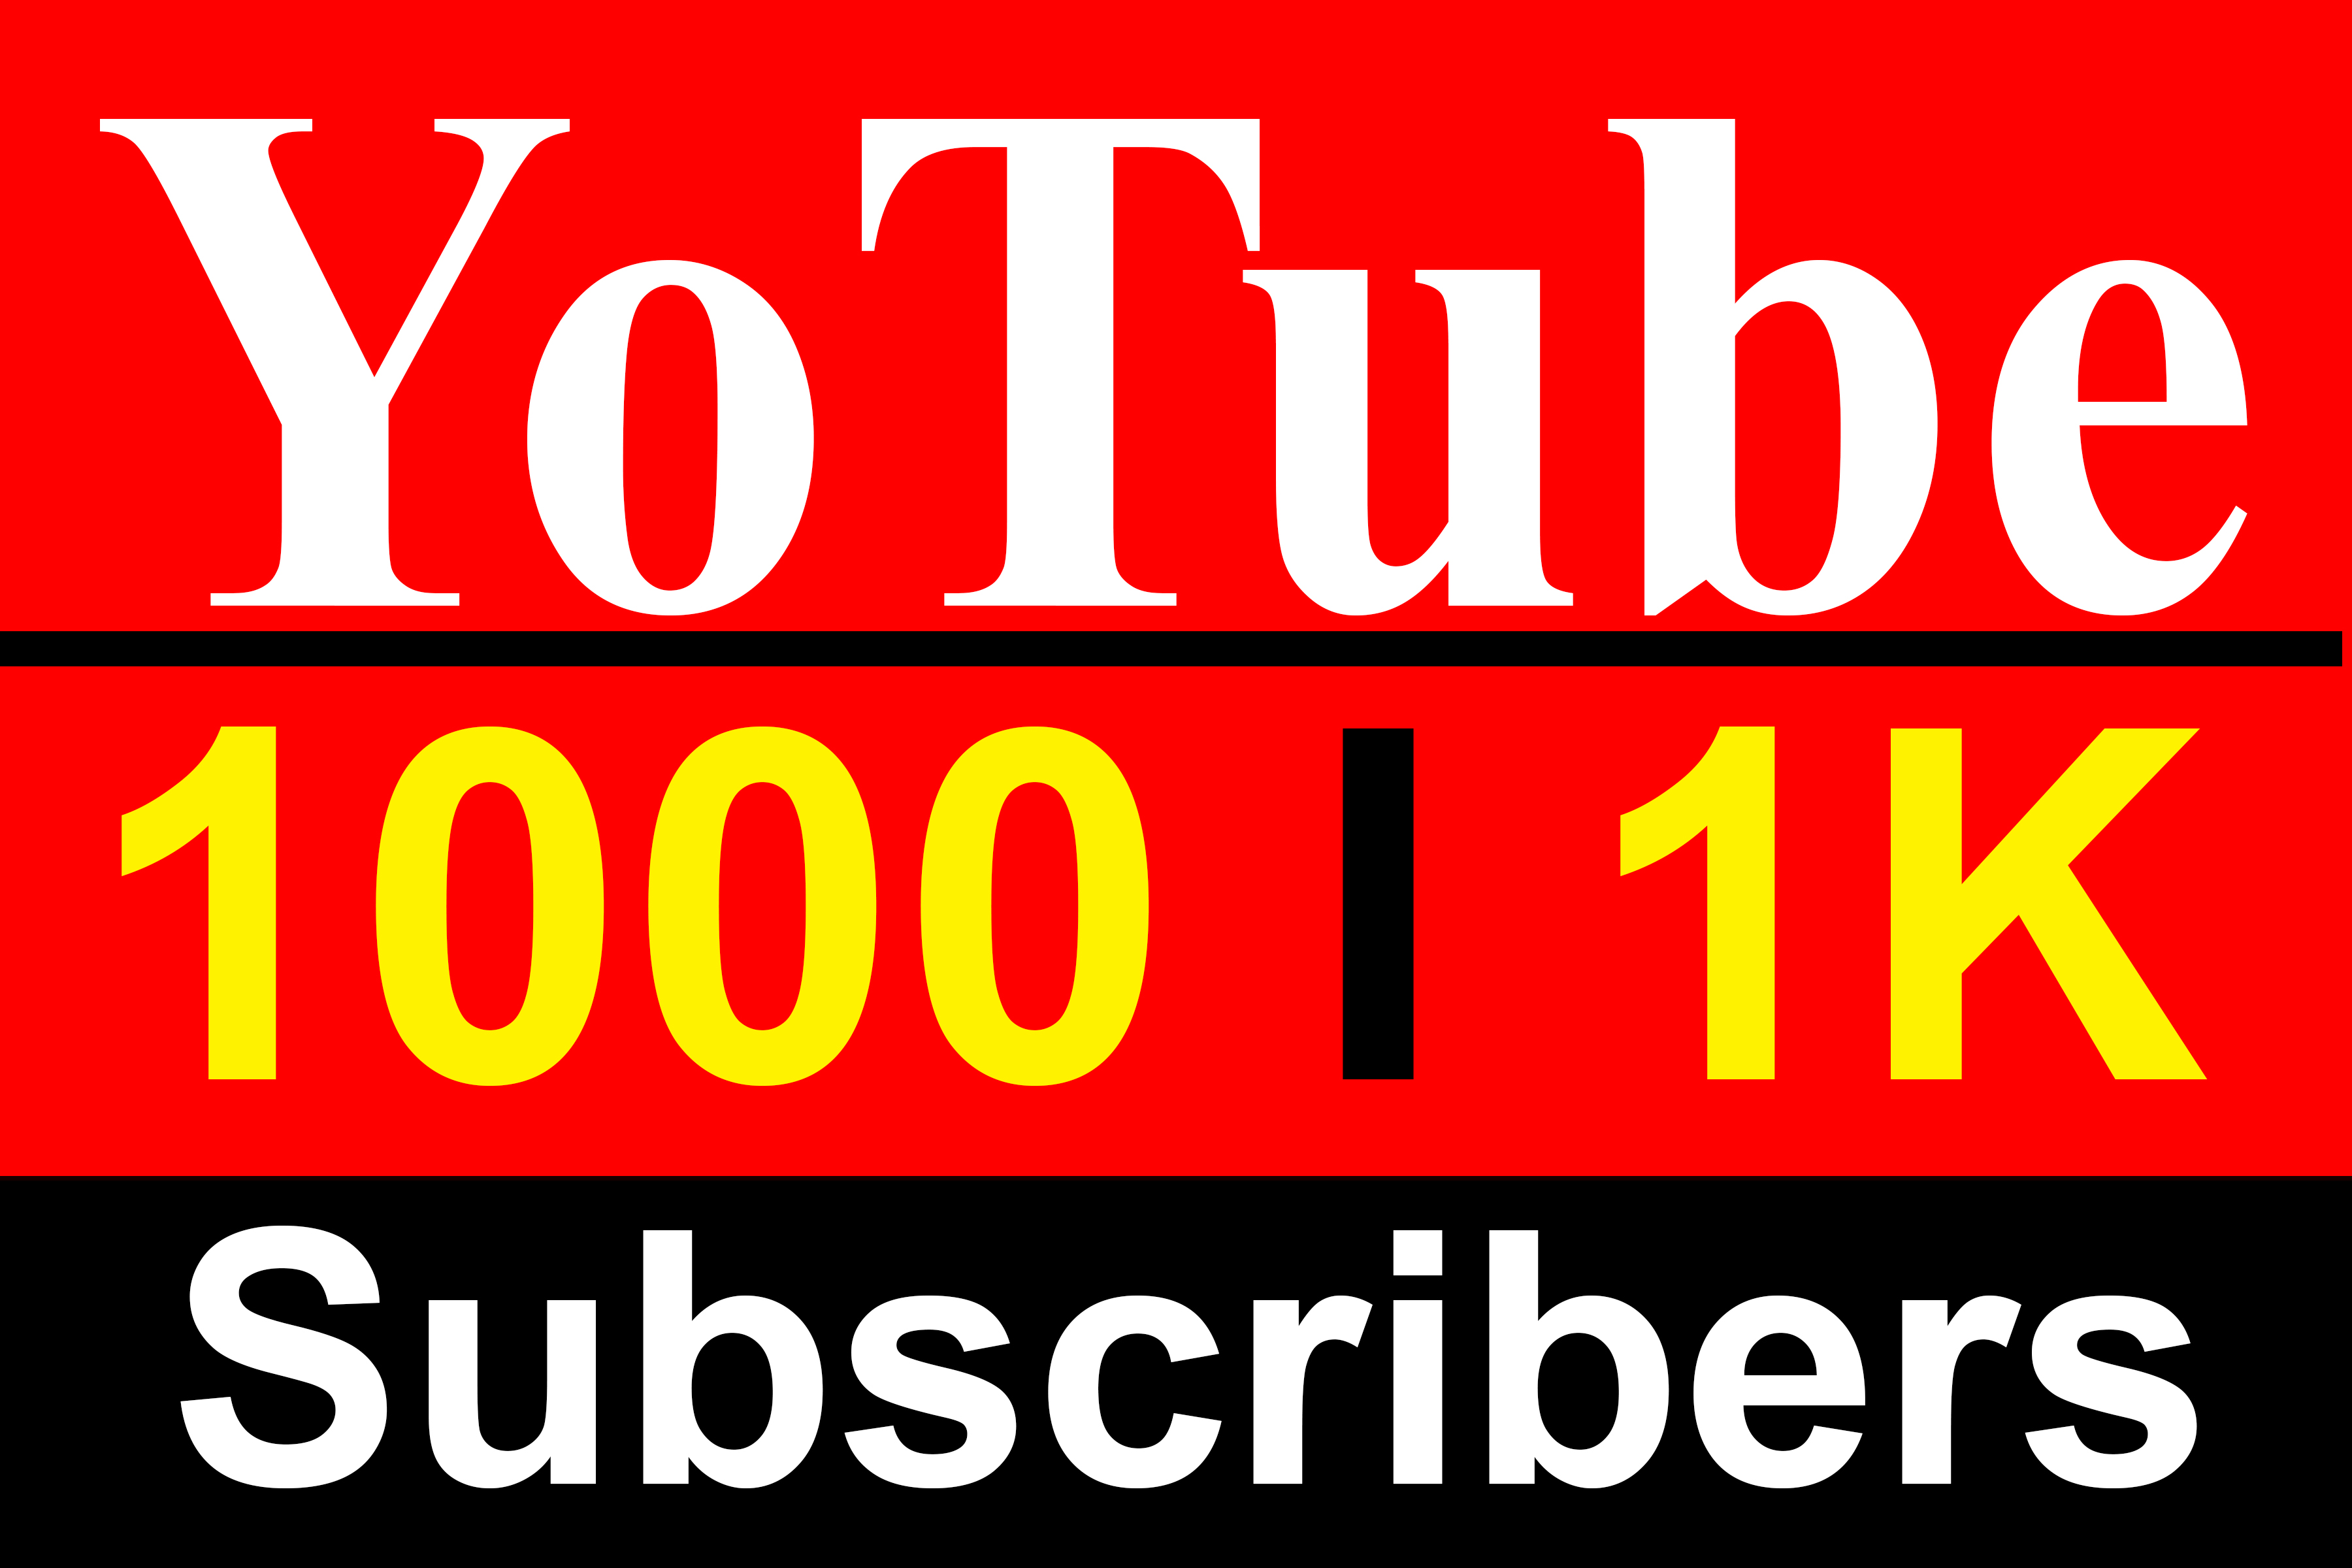 Pictures 500 Instant Free Youtube Subscribers – Desenhos Para Colorir